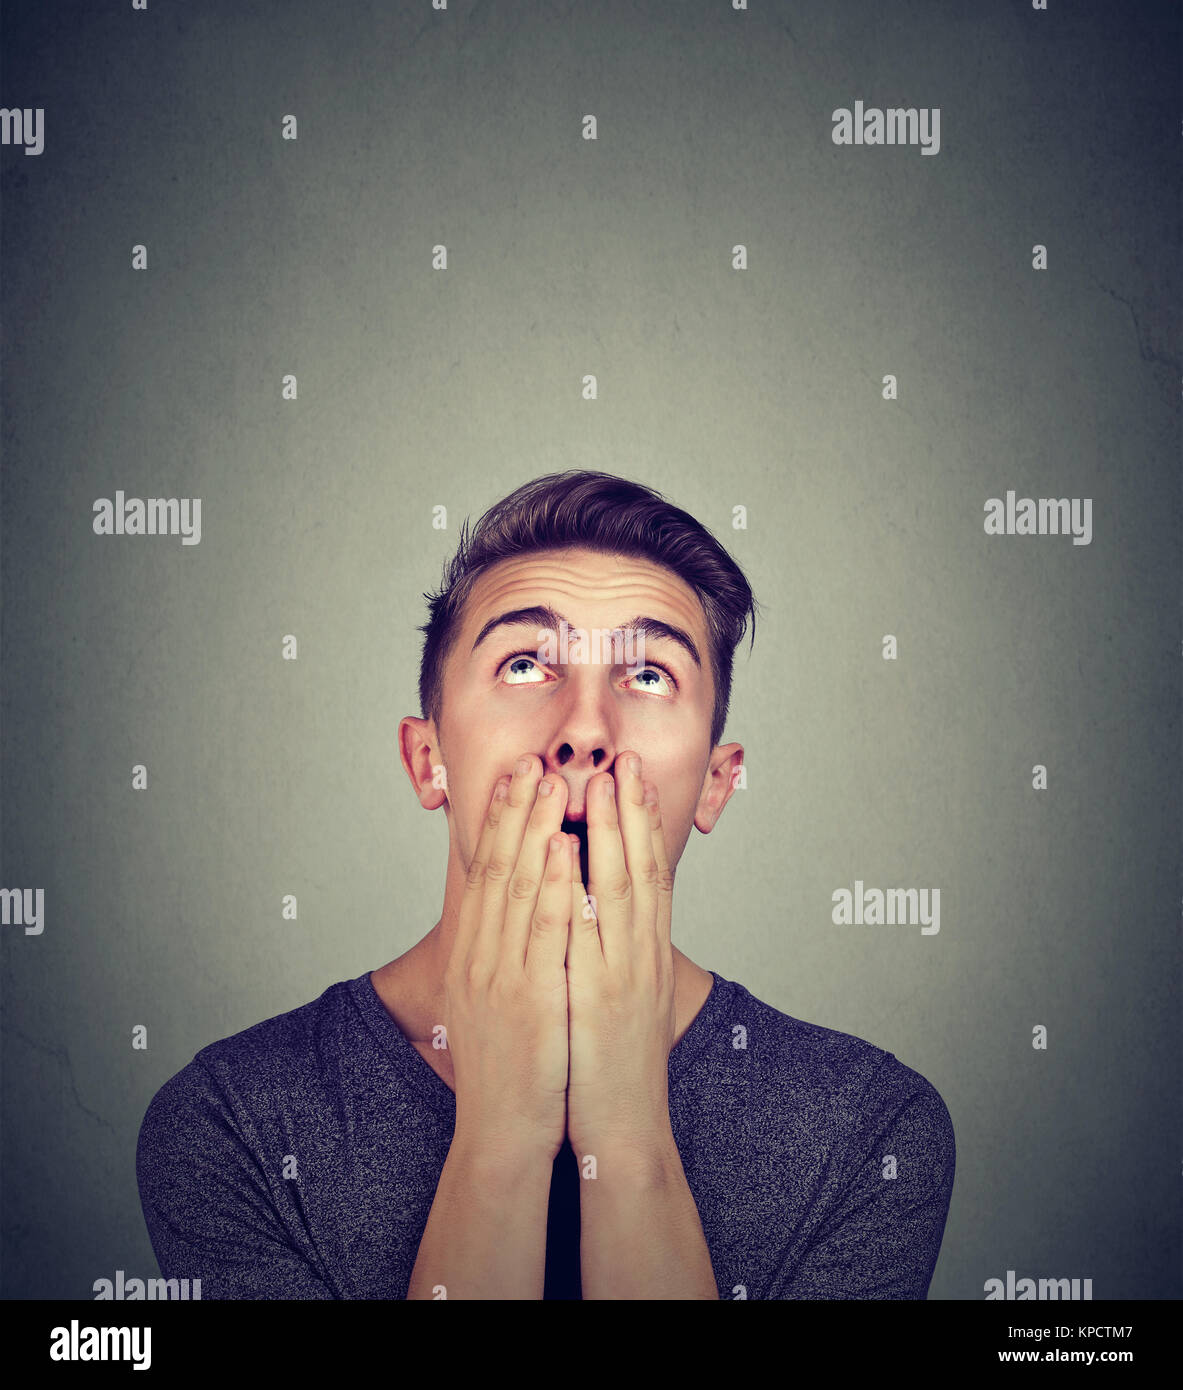 Young man covering mouth looking helplessly up and scared of things to come. - Stock Image